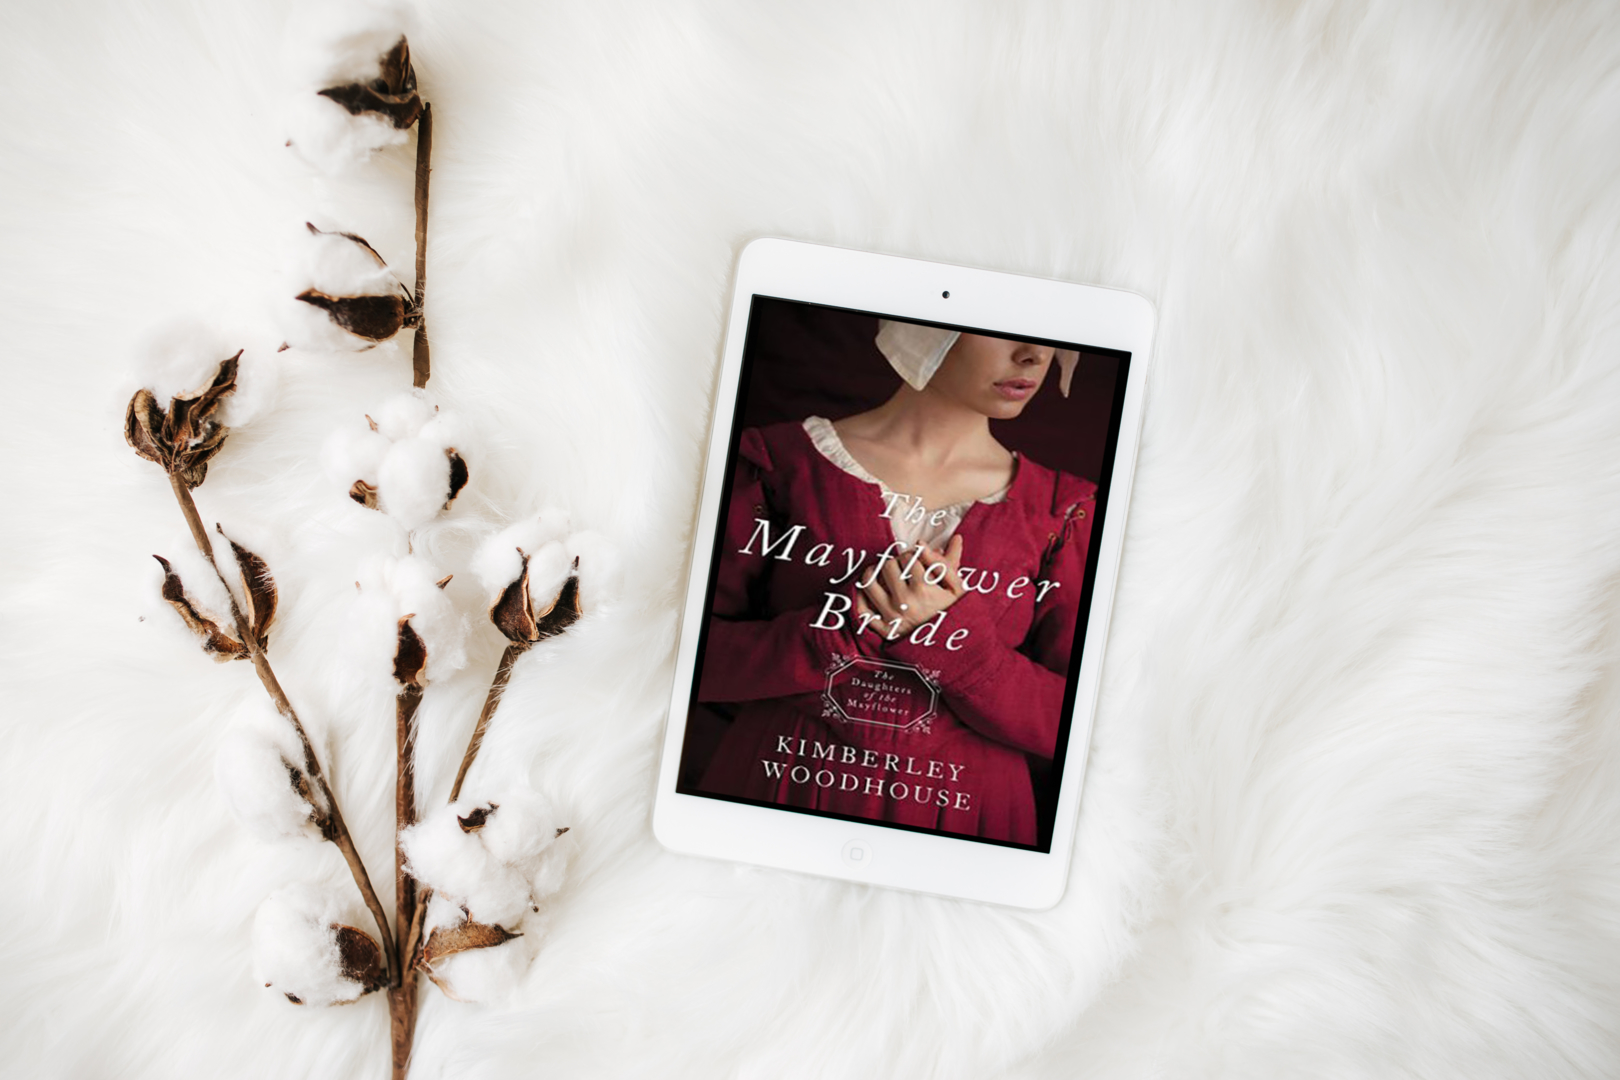 The mayflower bride kimberley woodhouse book review